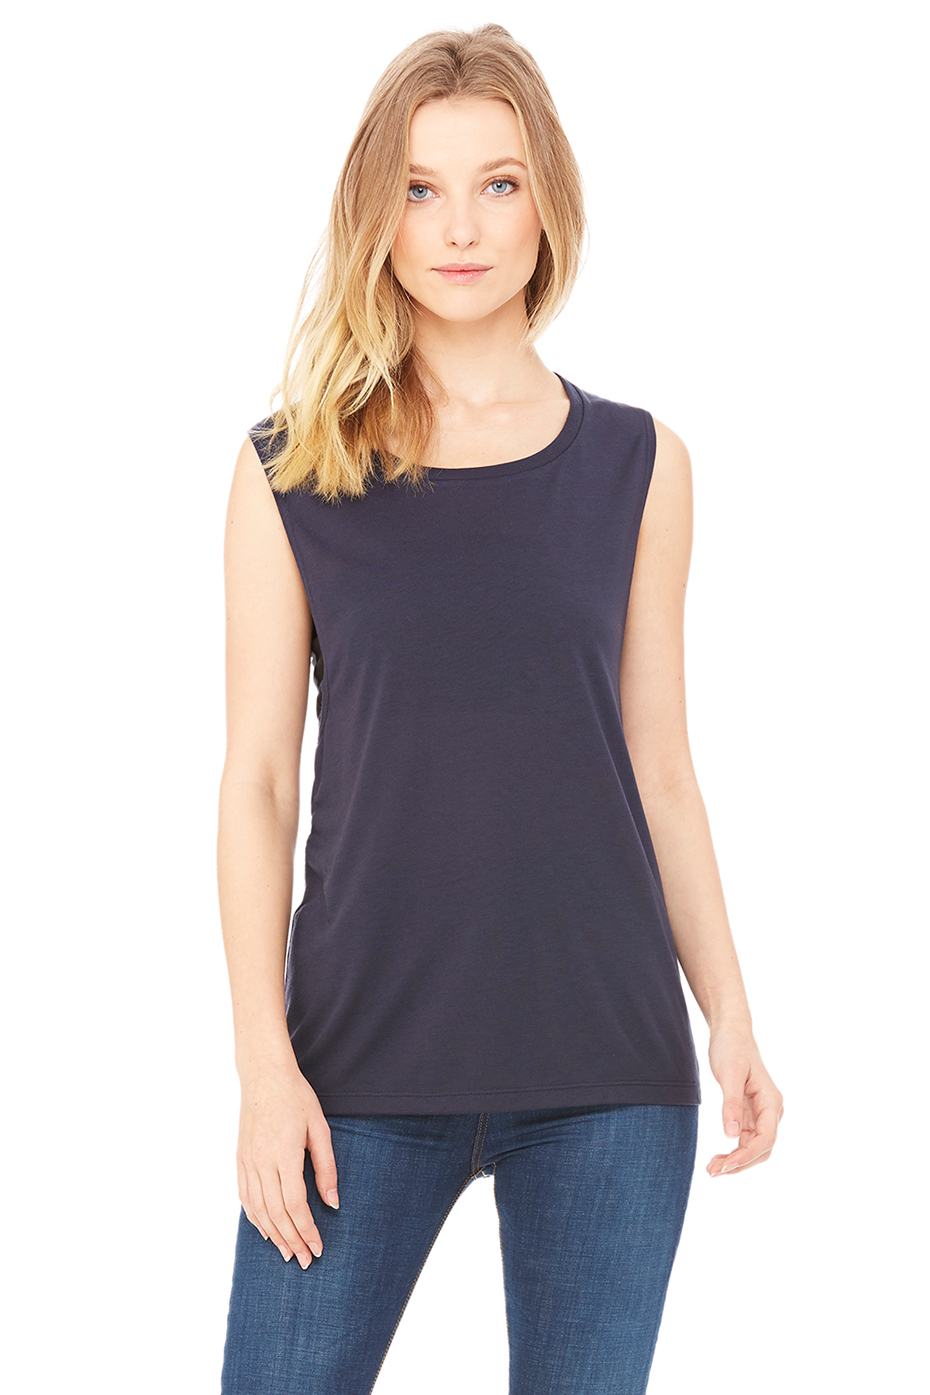 Nike 'Signal - Just Do It' Muscle Tank | Nordstrom